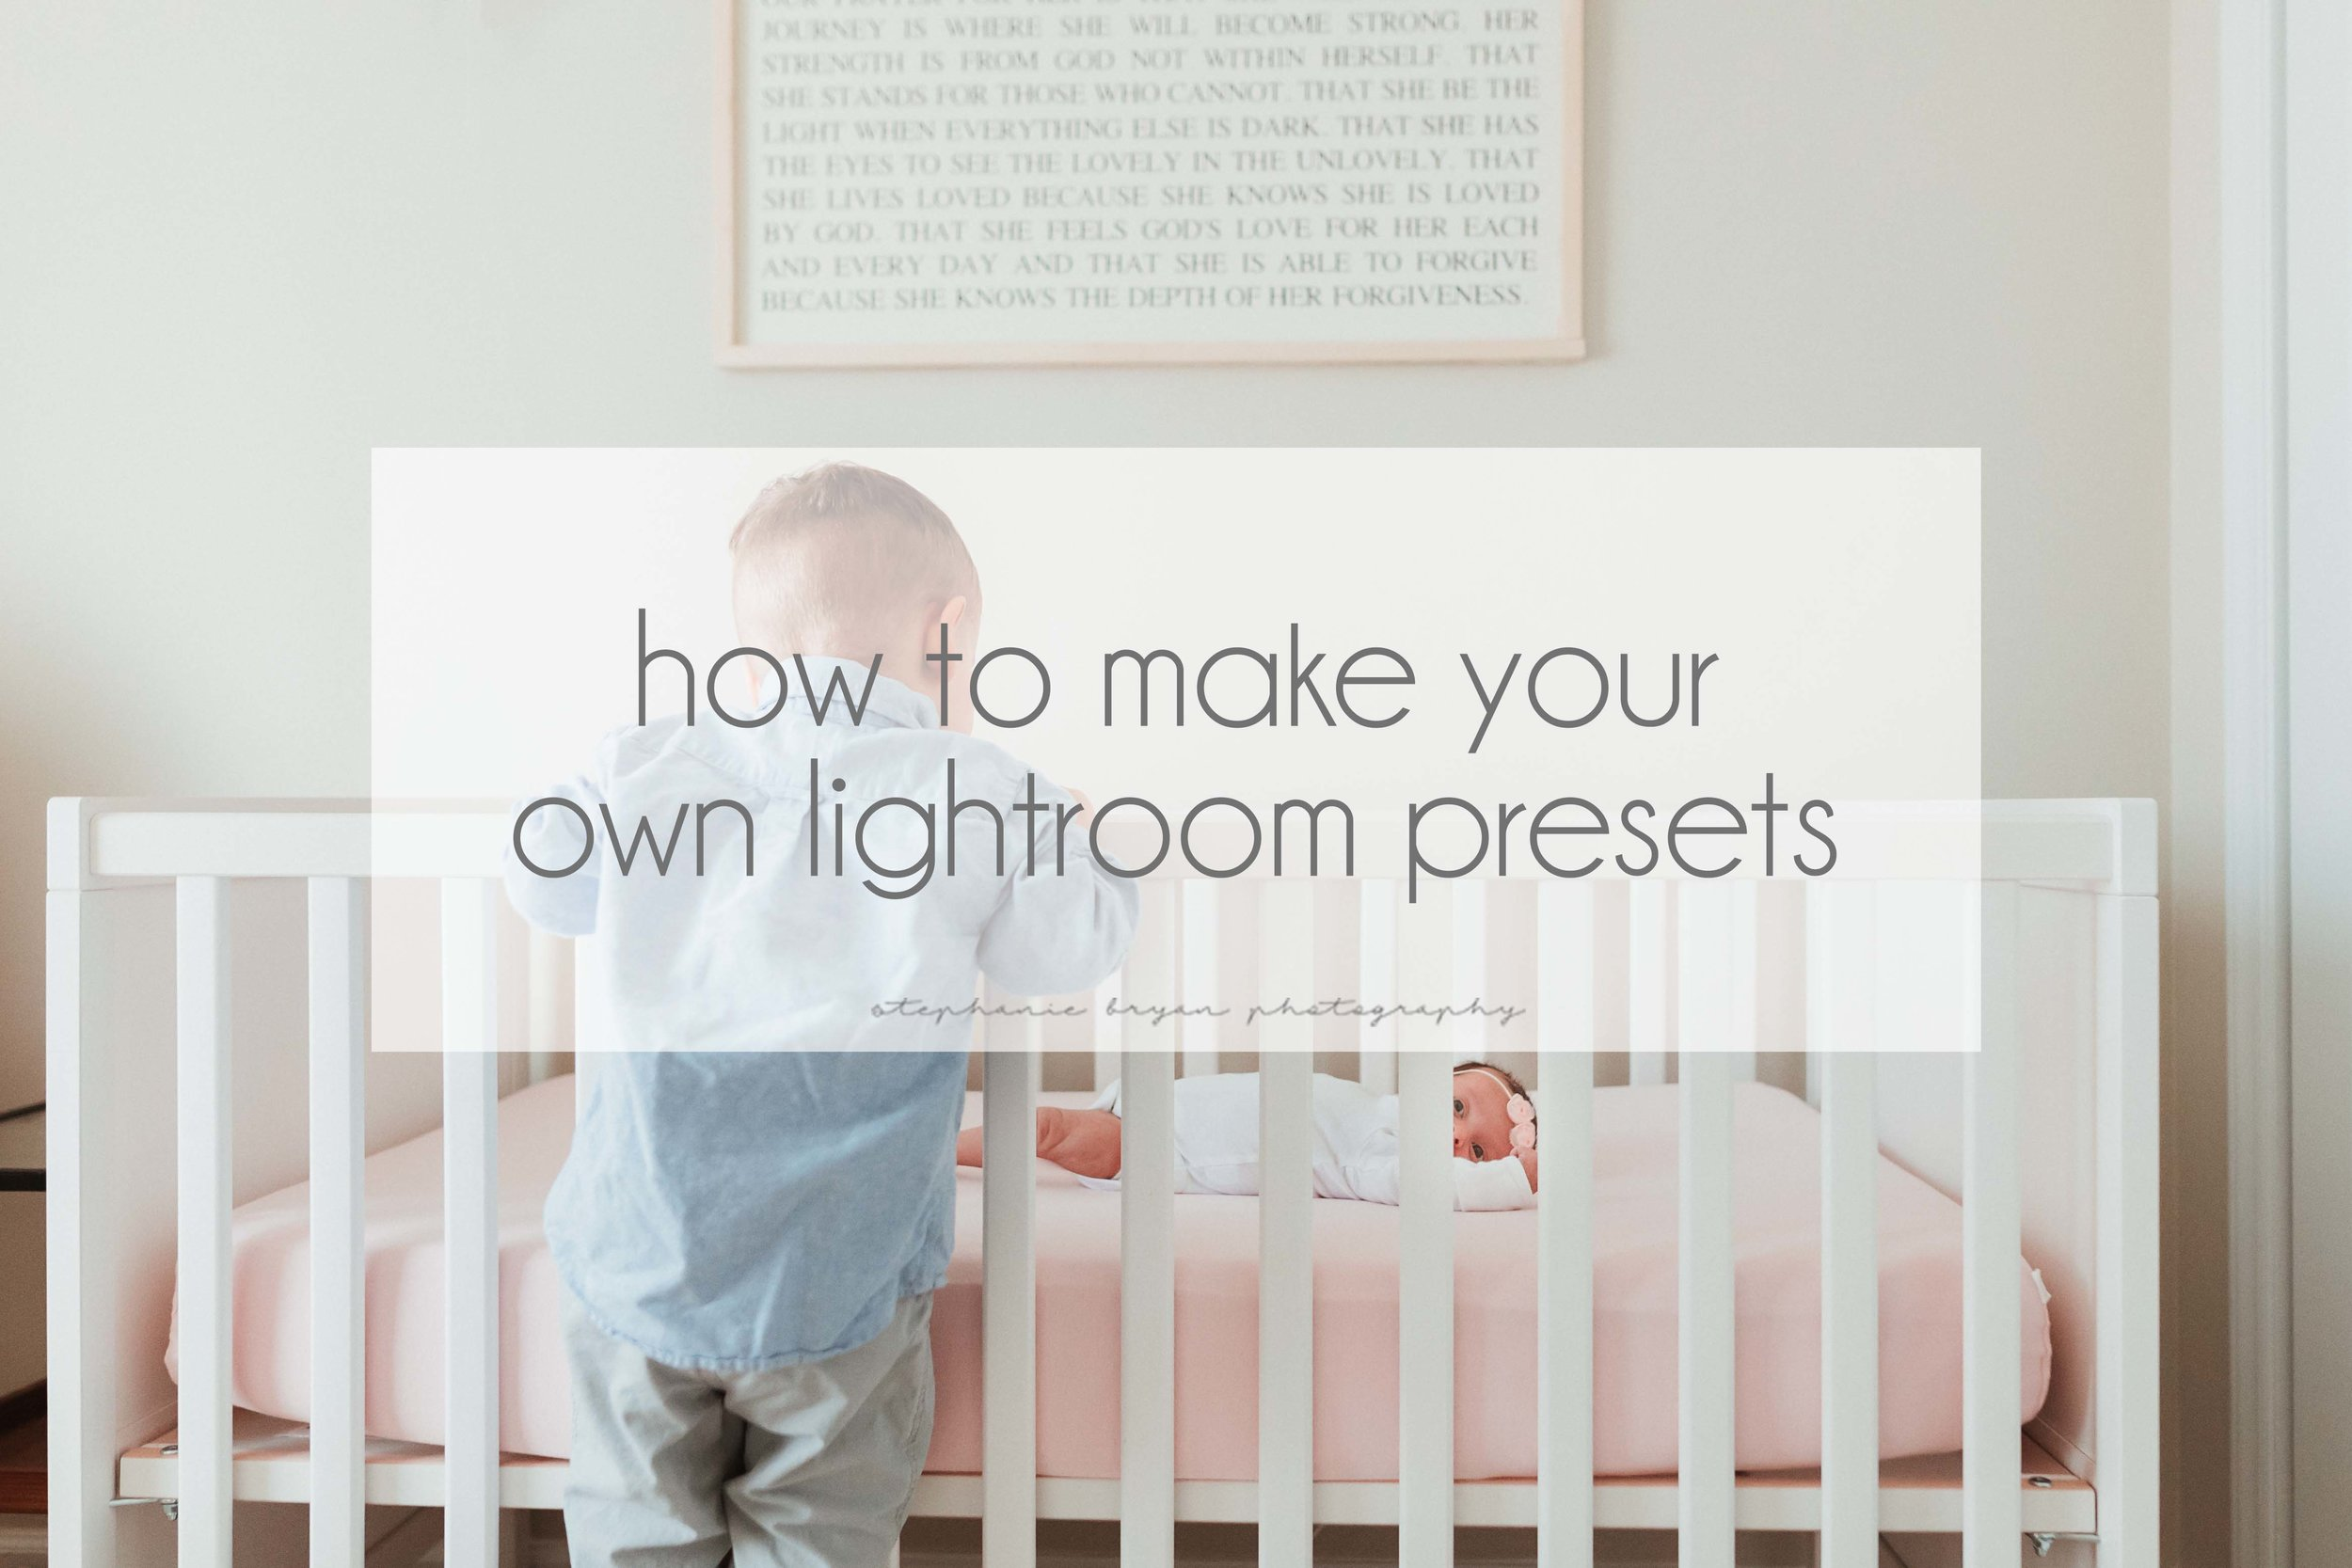 Stephanie Bryan Photography - How to make lightroom presets